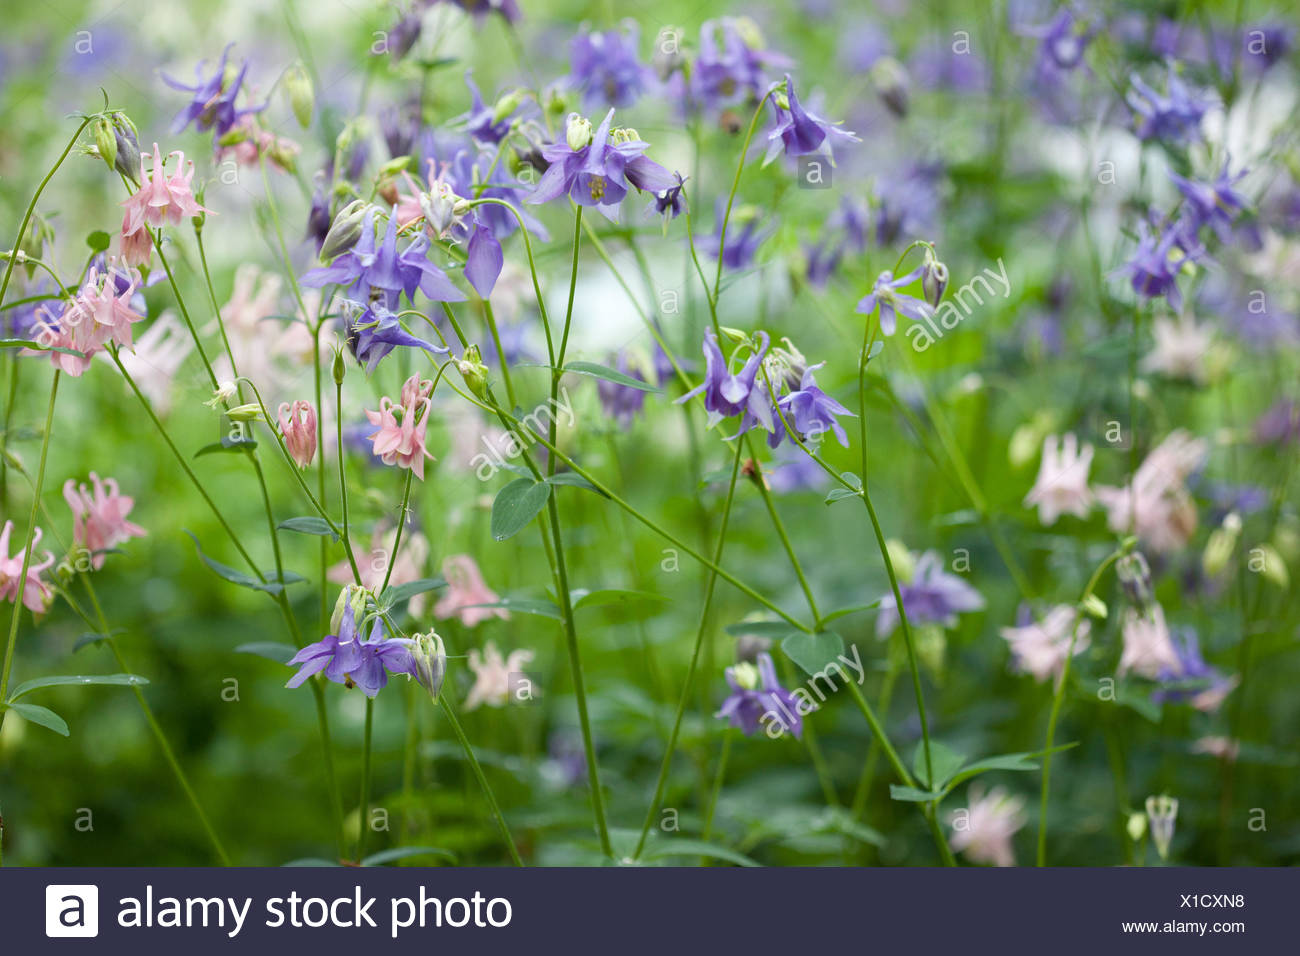 Beautiful flowers can be used for postcards - Stock Image